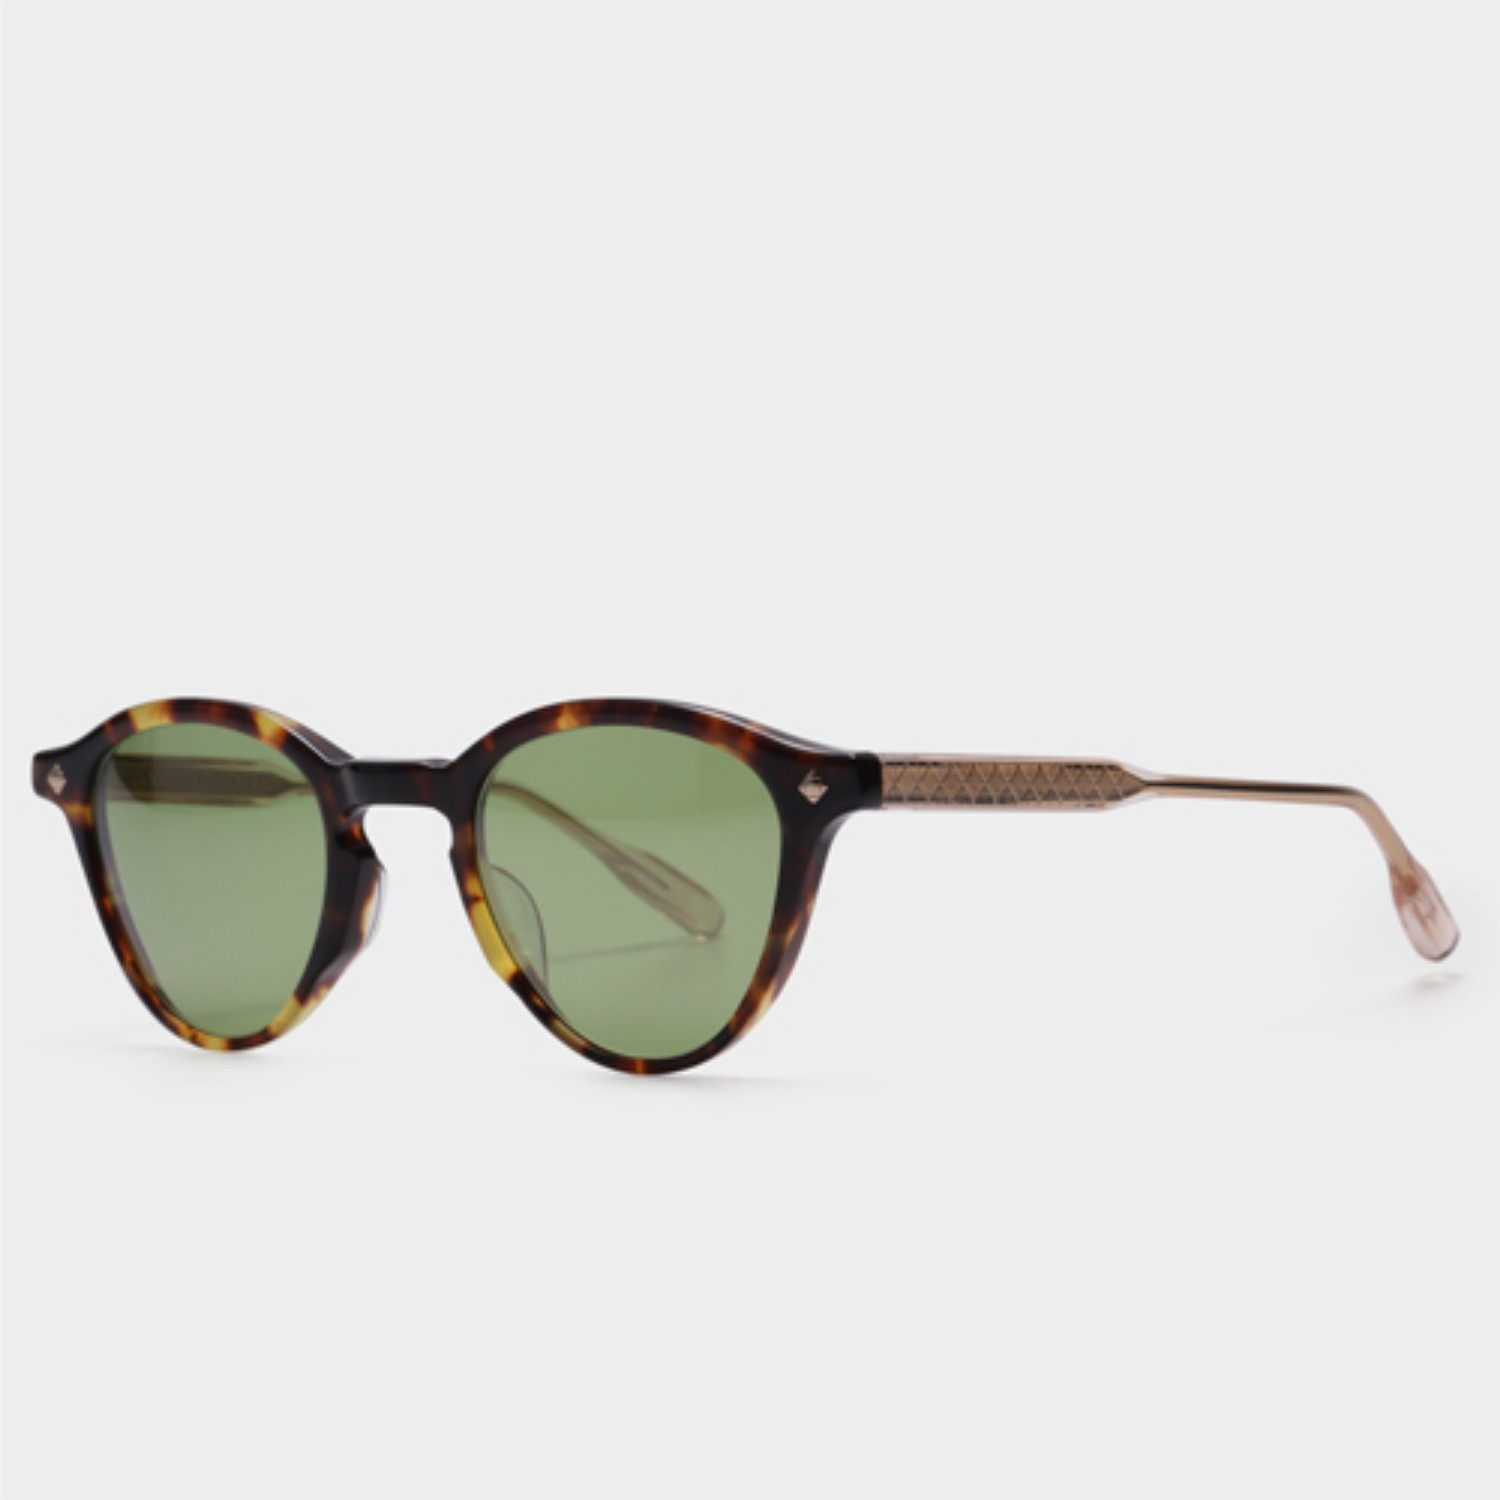 루네뜨리제너럴 DOLCE VITA III Tortoise And Sand (Green Lens)